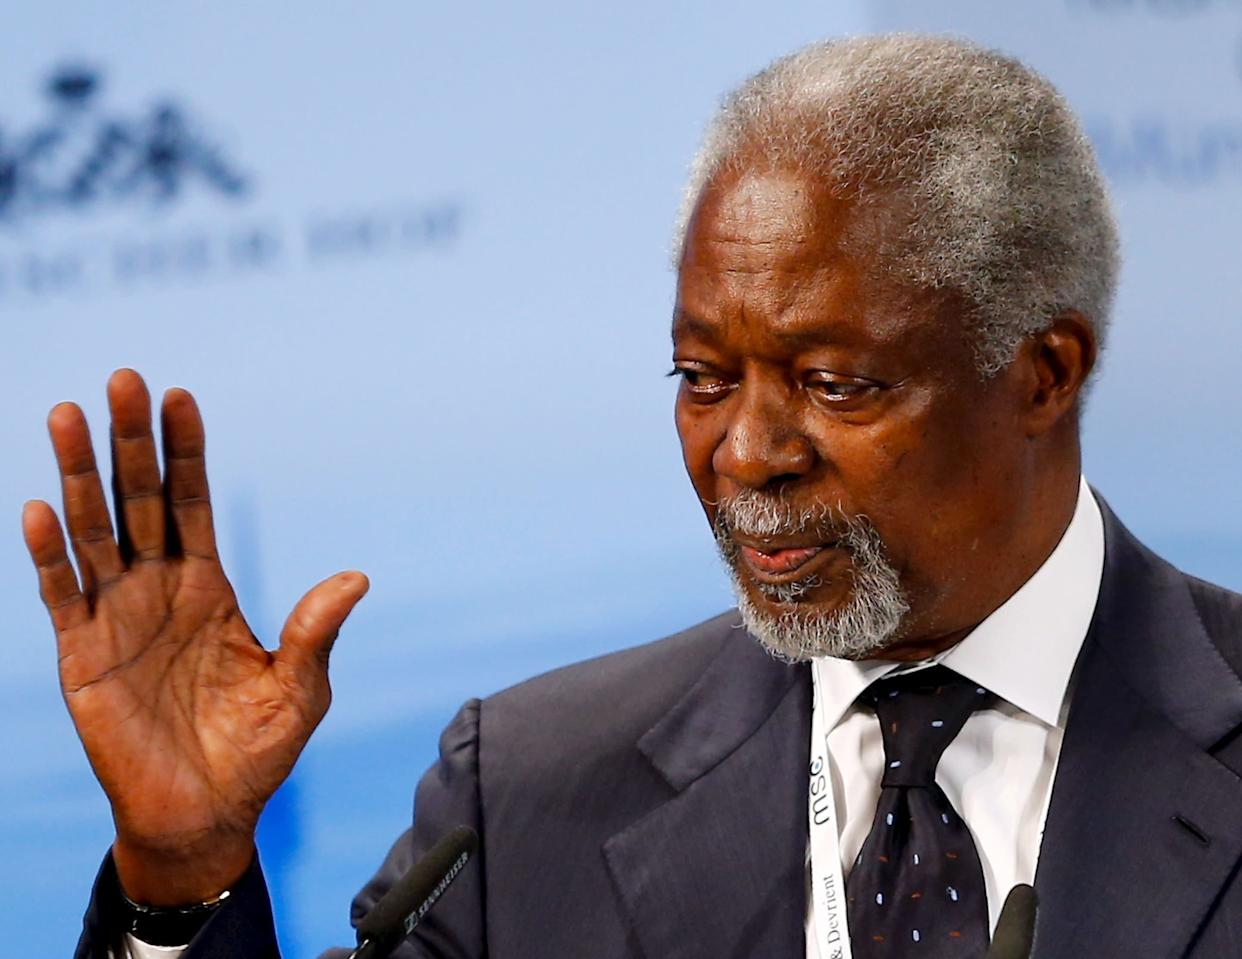 Kofi Annan, a Ghanaian diplomat and former United Nations secretary-general, died at the age of 80 on August 18, 2018.